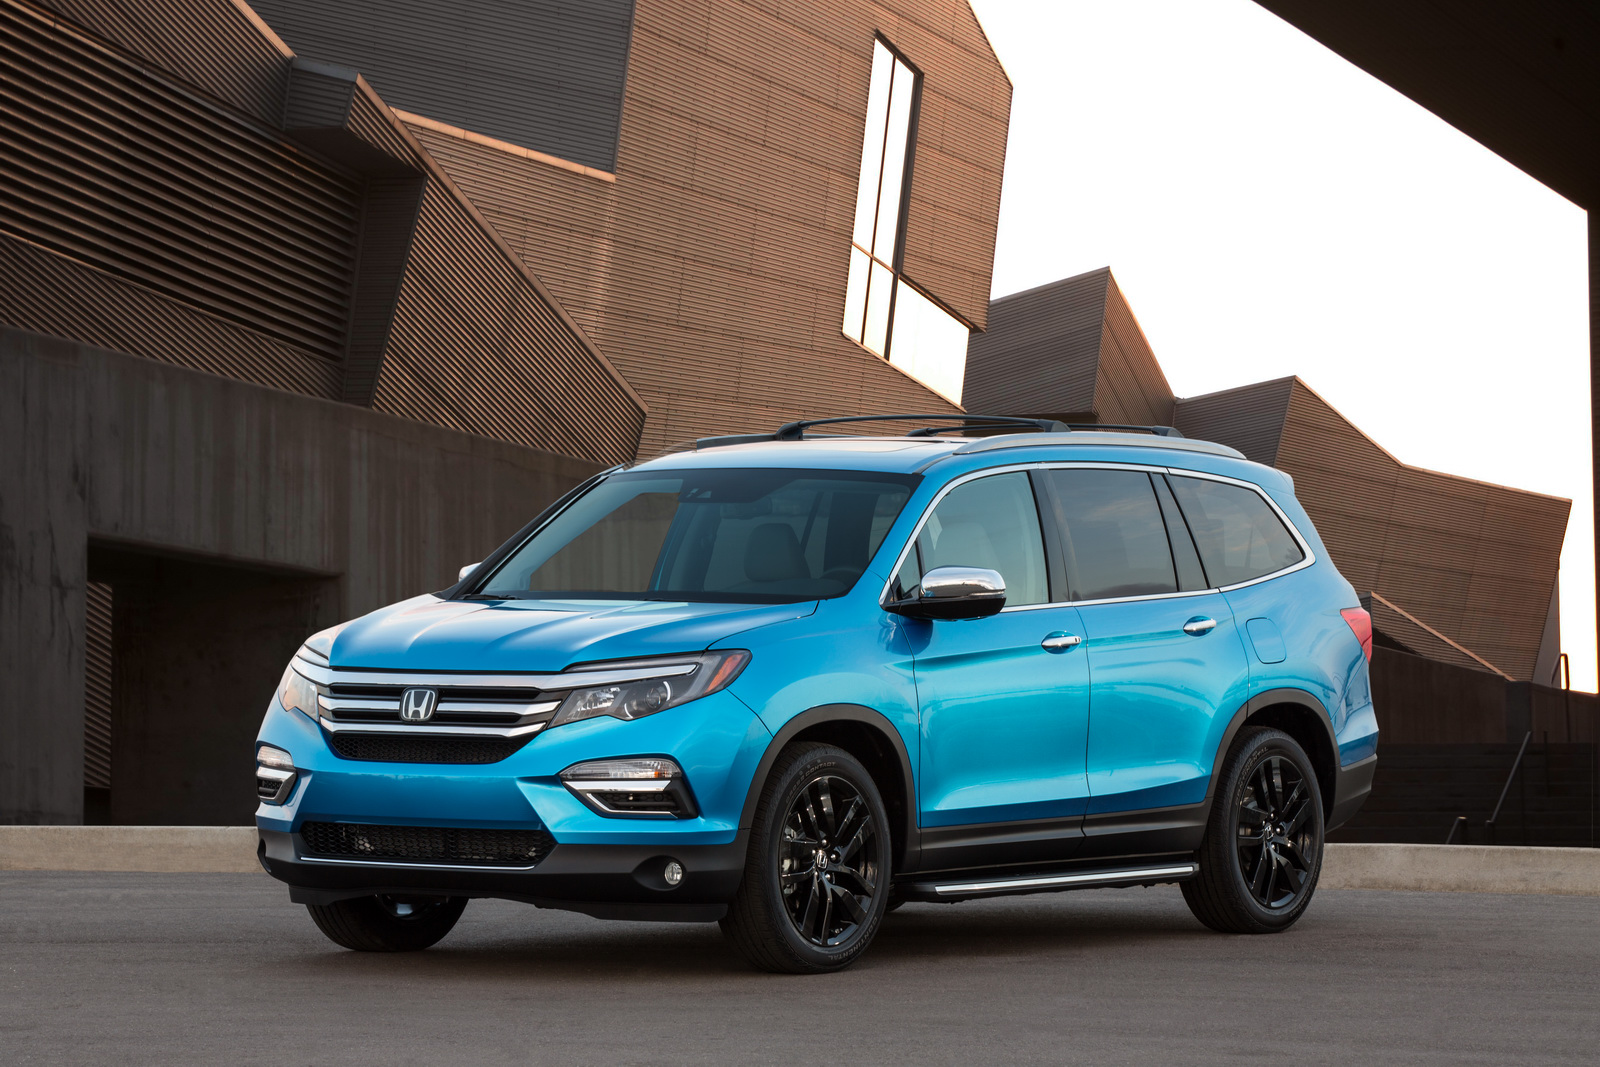 Facelift Cars - 2016 Honda Pilot with accessories installed, including: 20-inch black wheels; chrome door mirror cover; chrome tailgate trim; running boards with lights; roof rails with crossbars; illuminated door sill trim; and chrome front bumper trim.